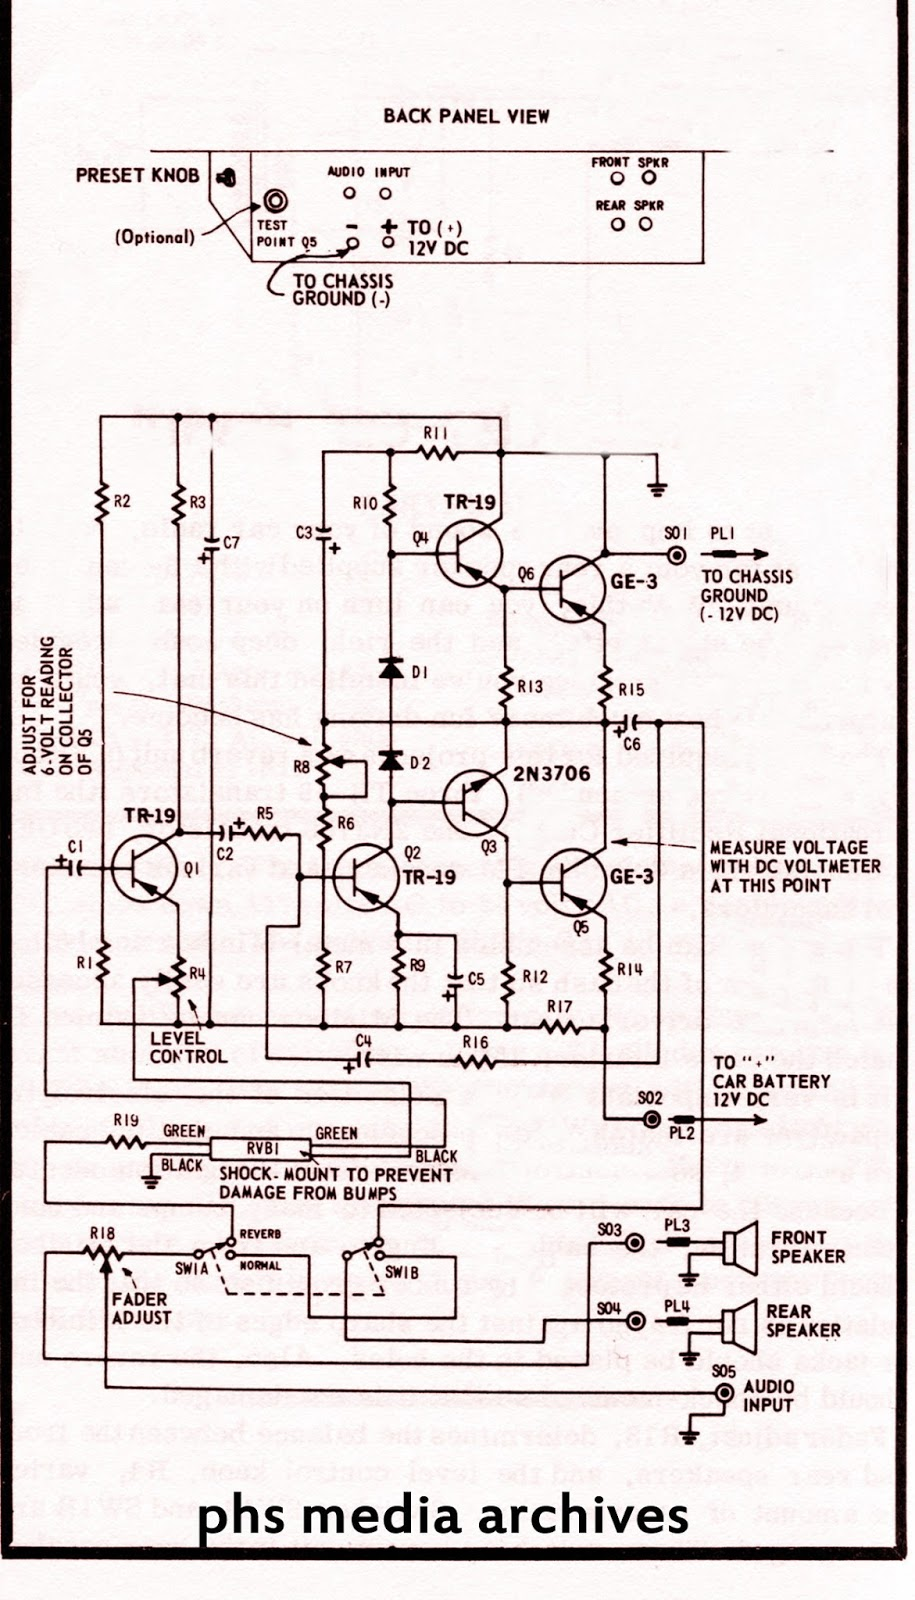 small resolution of dm007 quadcopter wiring diagram explorer schematic diagram power window circuit diagram of 1966 oldsmobile 33000 series